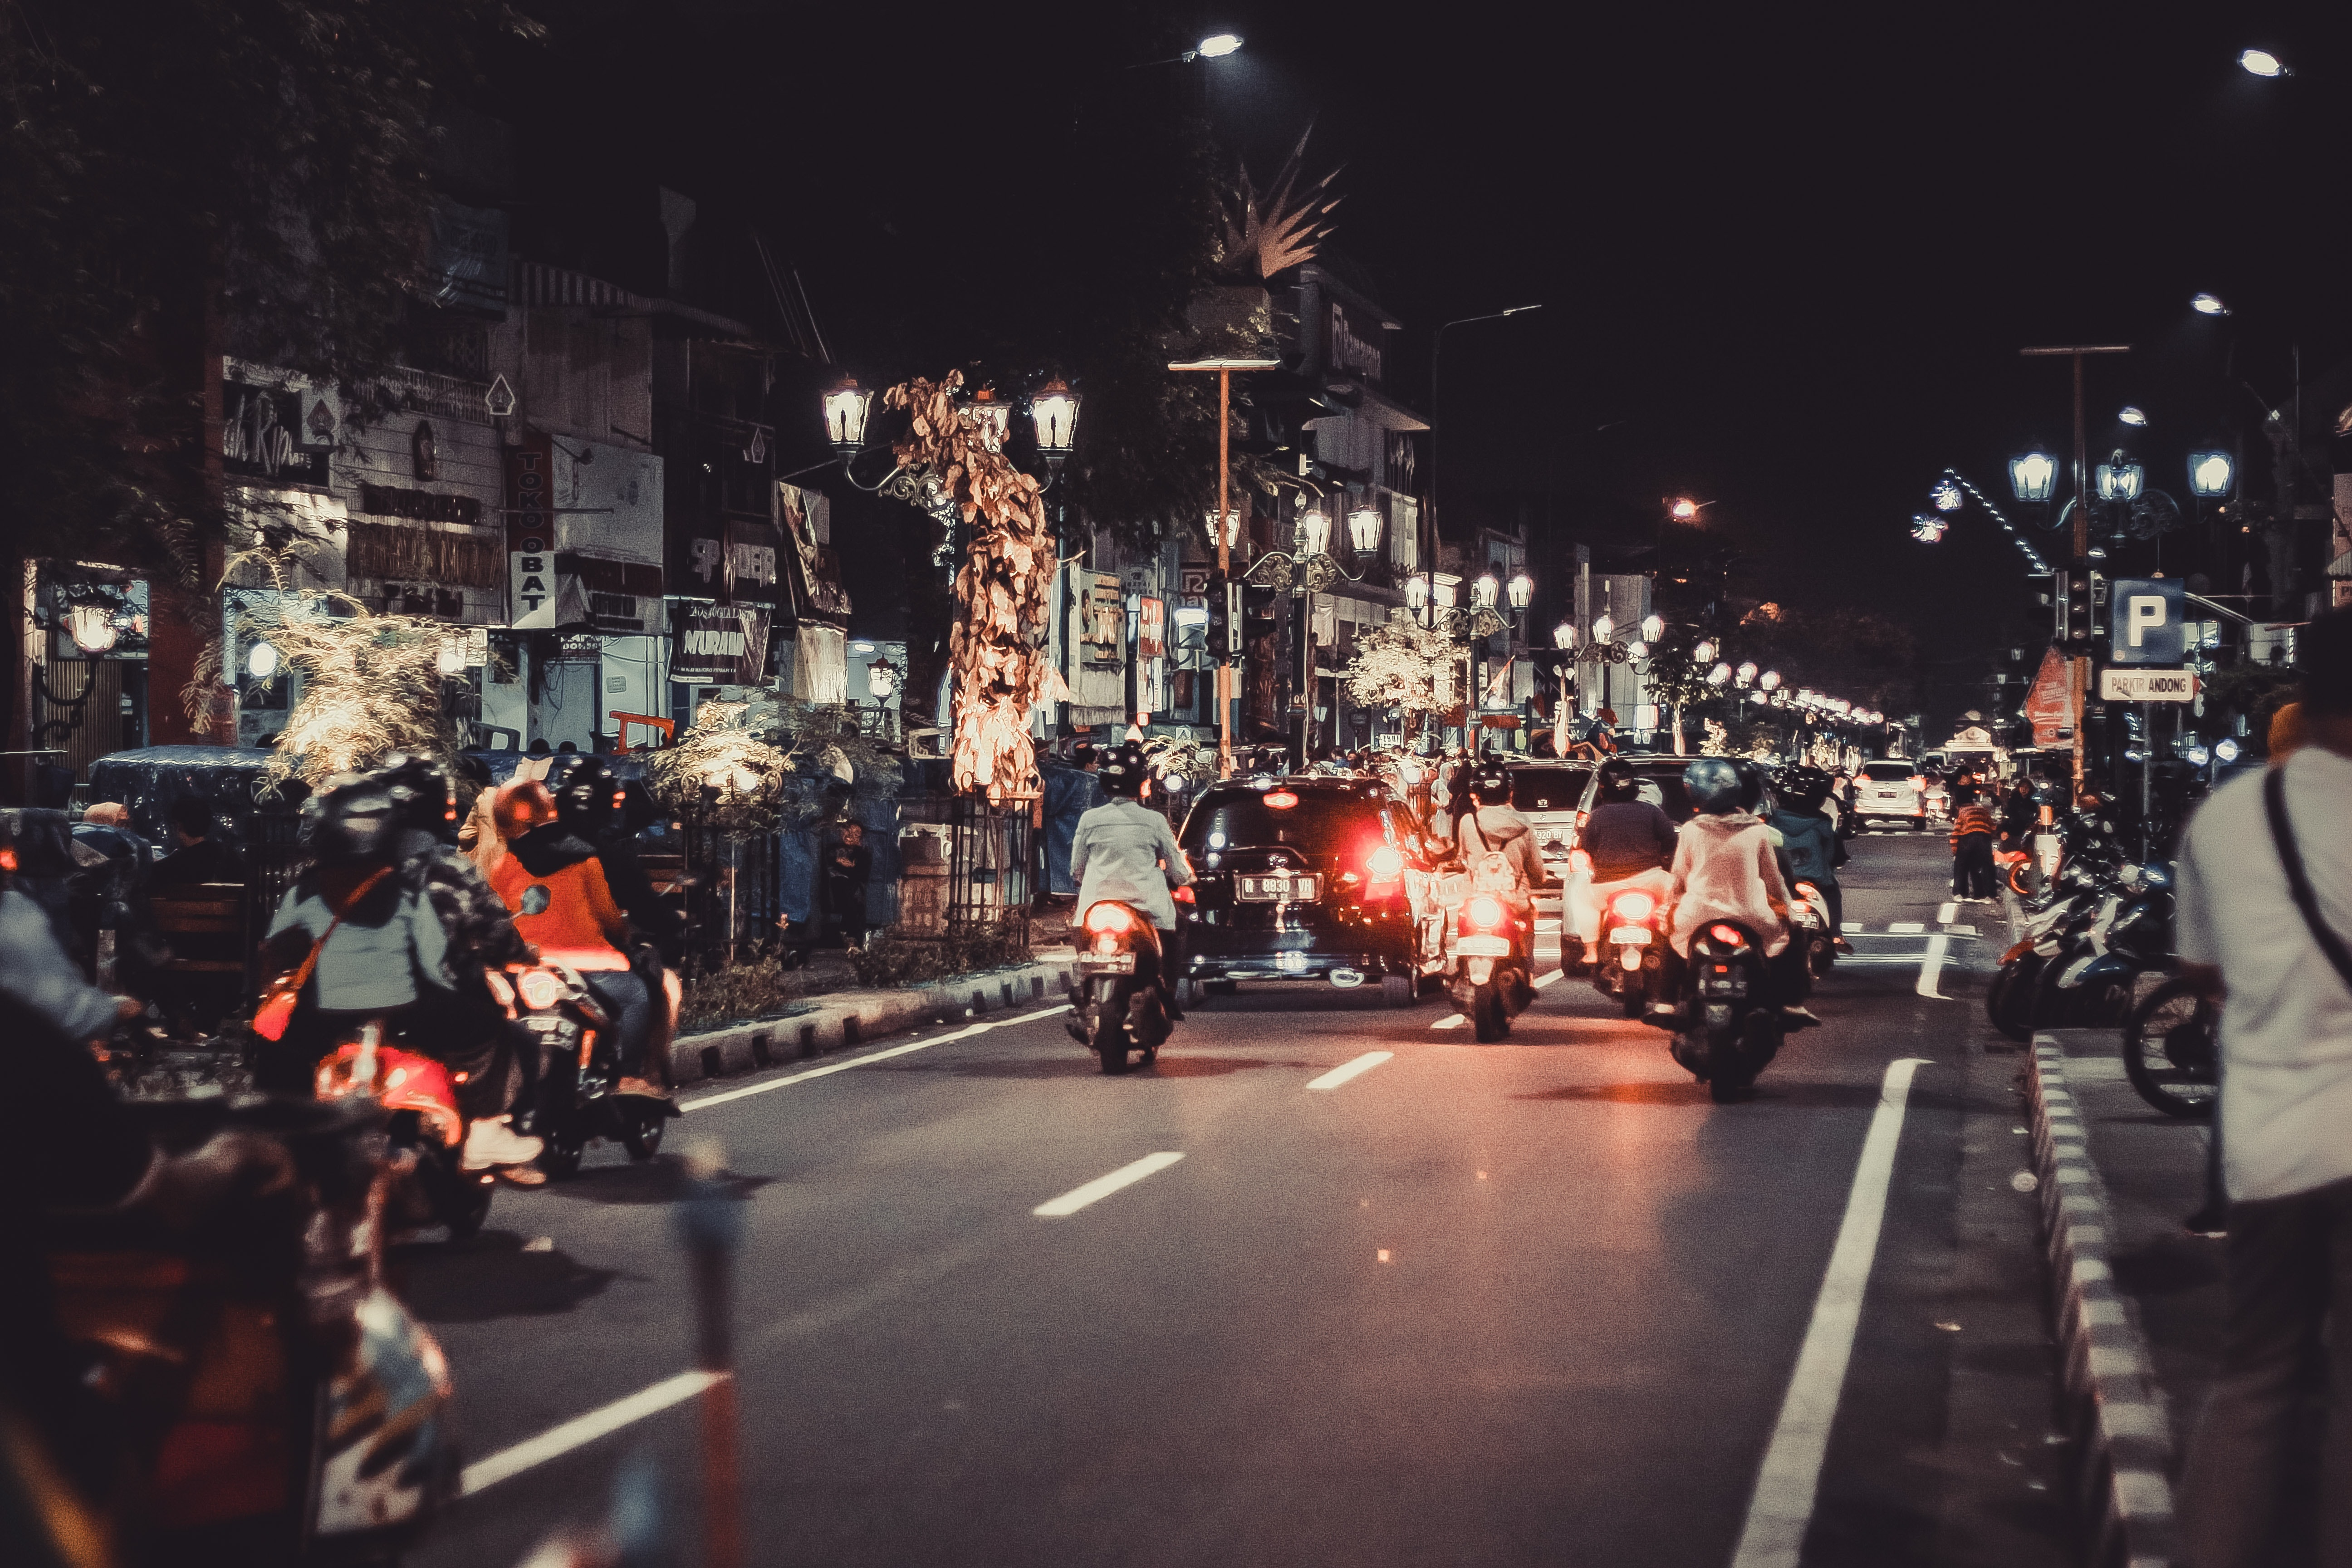 Motocycles, Driving, Buildings, Night Driving